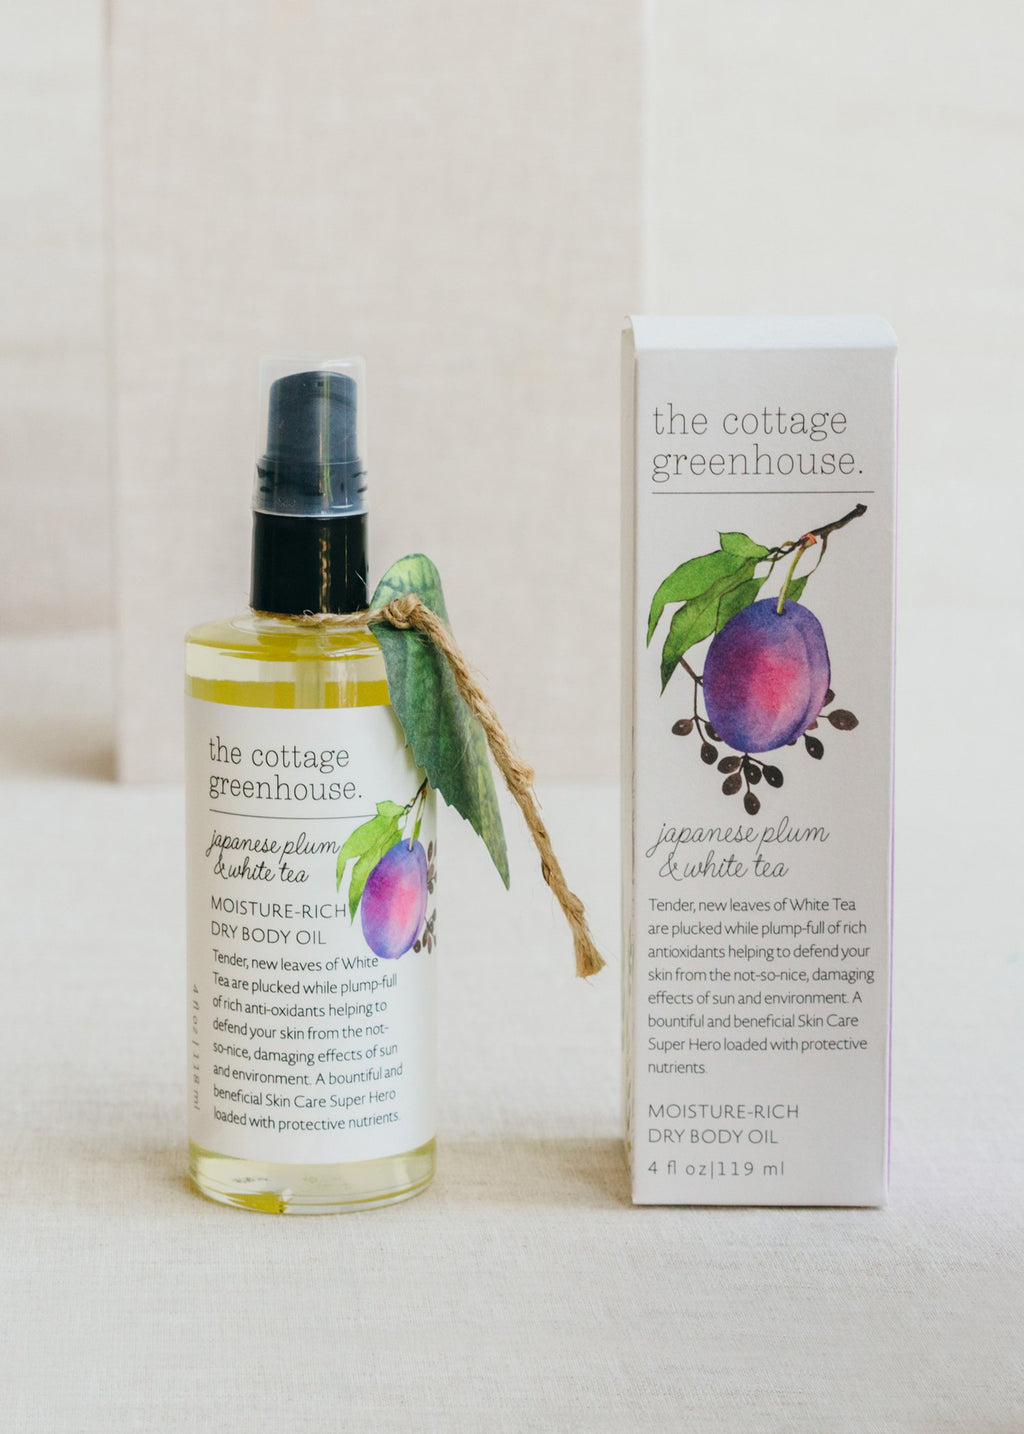 Japanese Plum & White Tea Dry Body Oil || Cottage Greenhouse